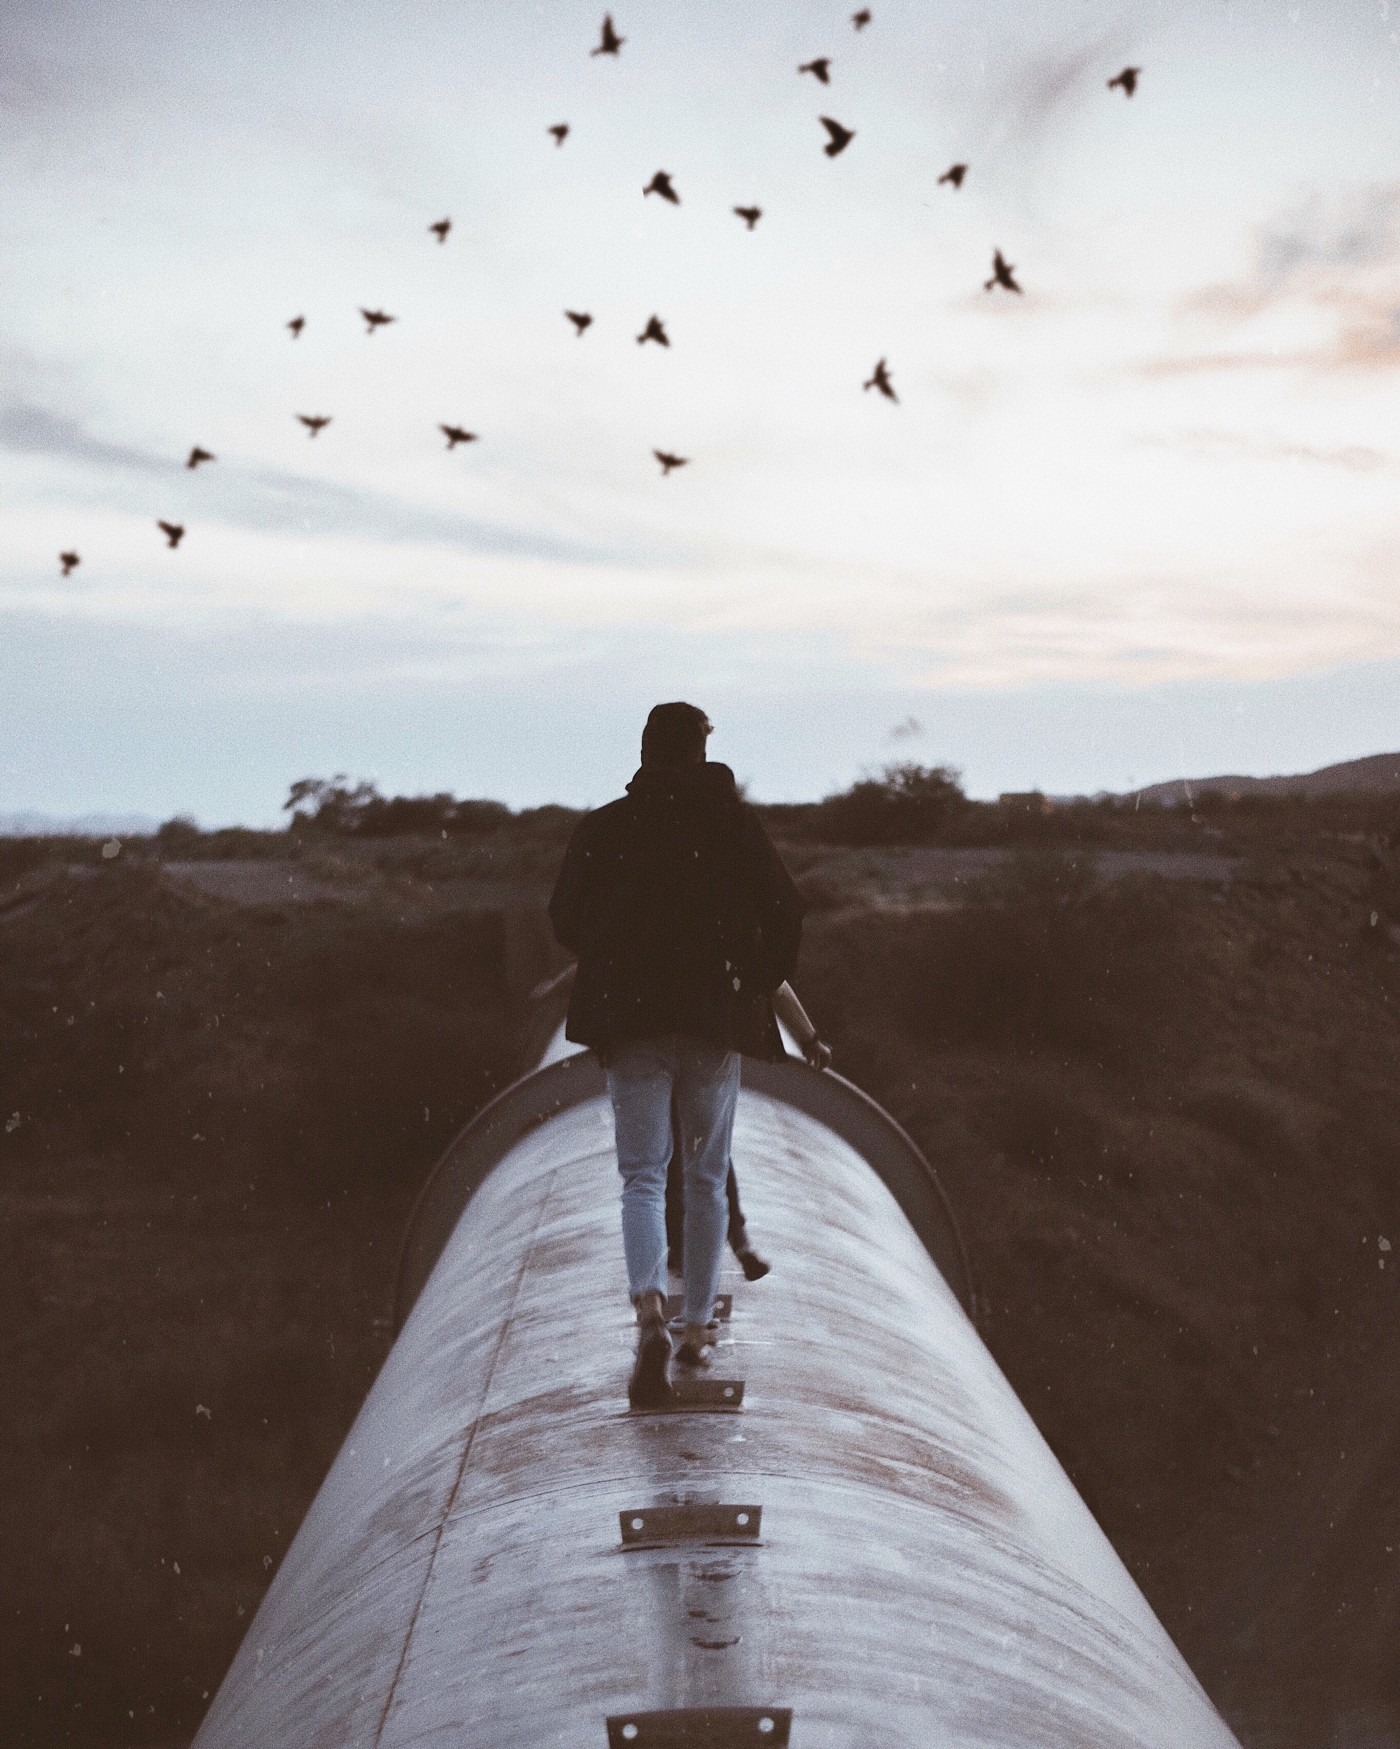 A man walking on a train's roof with his girlfriend. He is positive with what is ahead, seeing birds flying and bright sky.